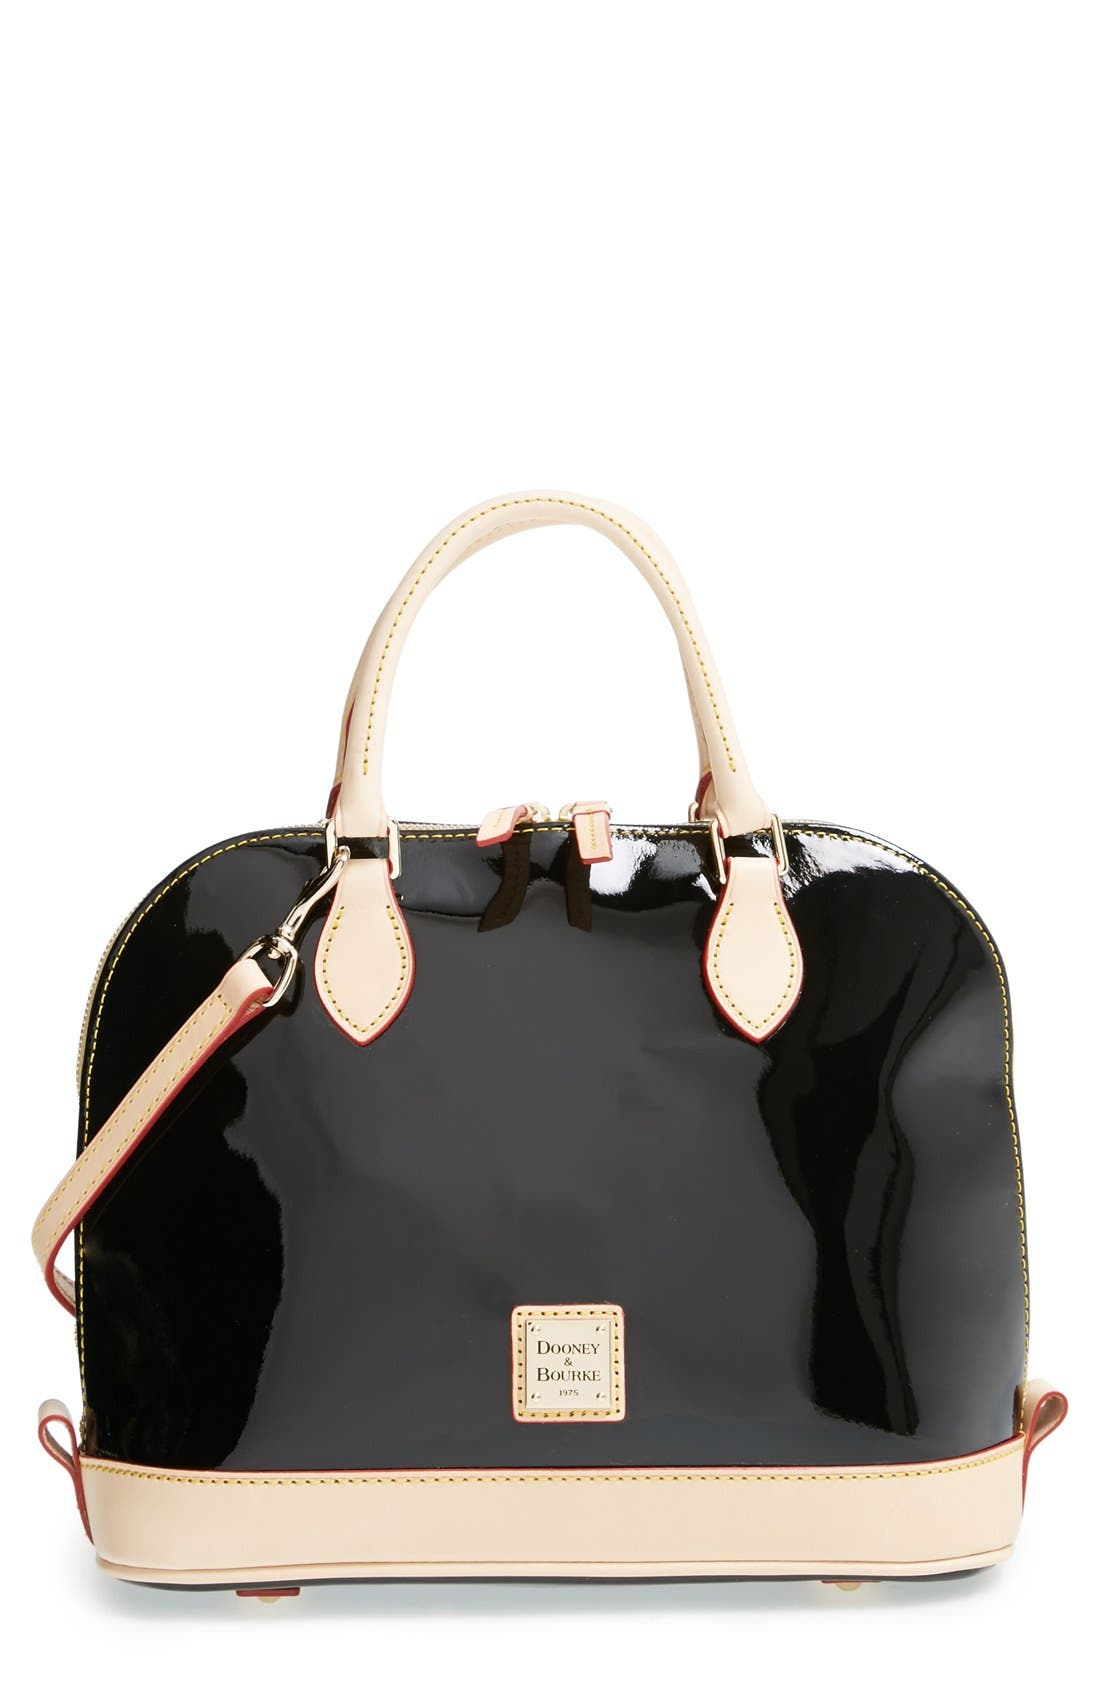 Main Image - Dooney & Bourke Patent Leather Satchel